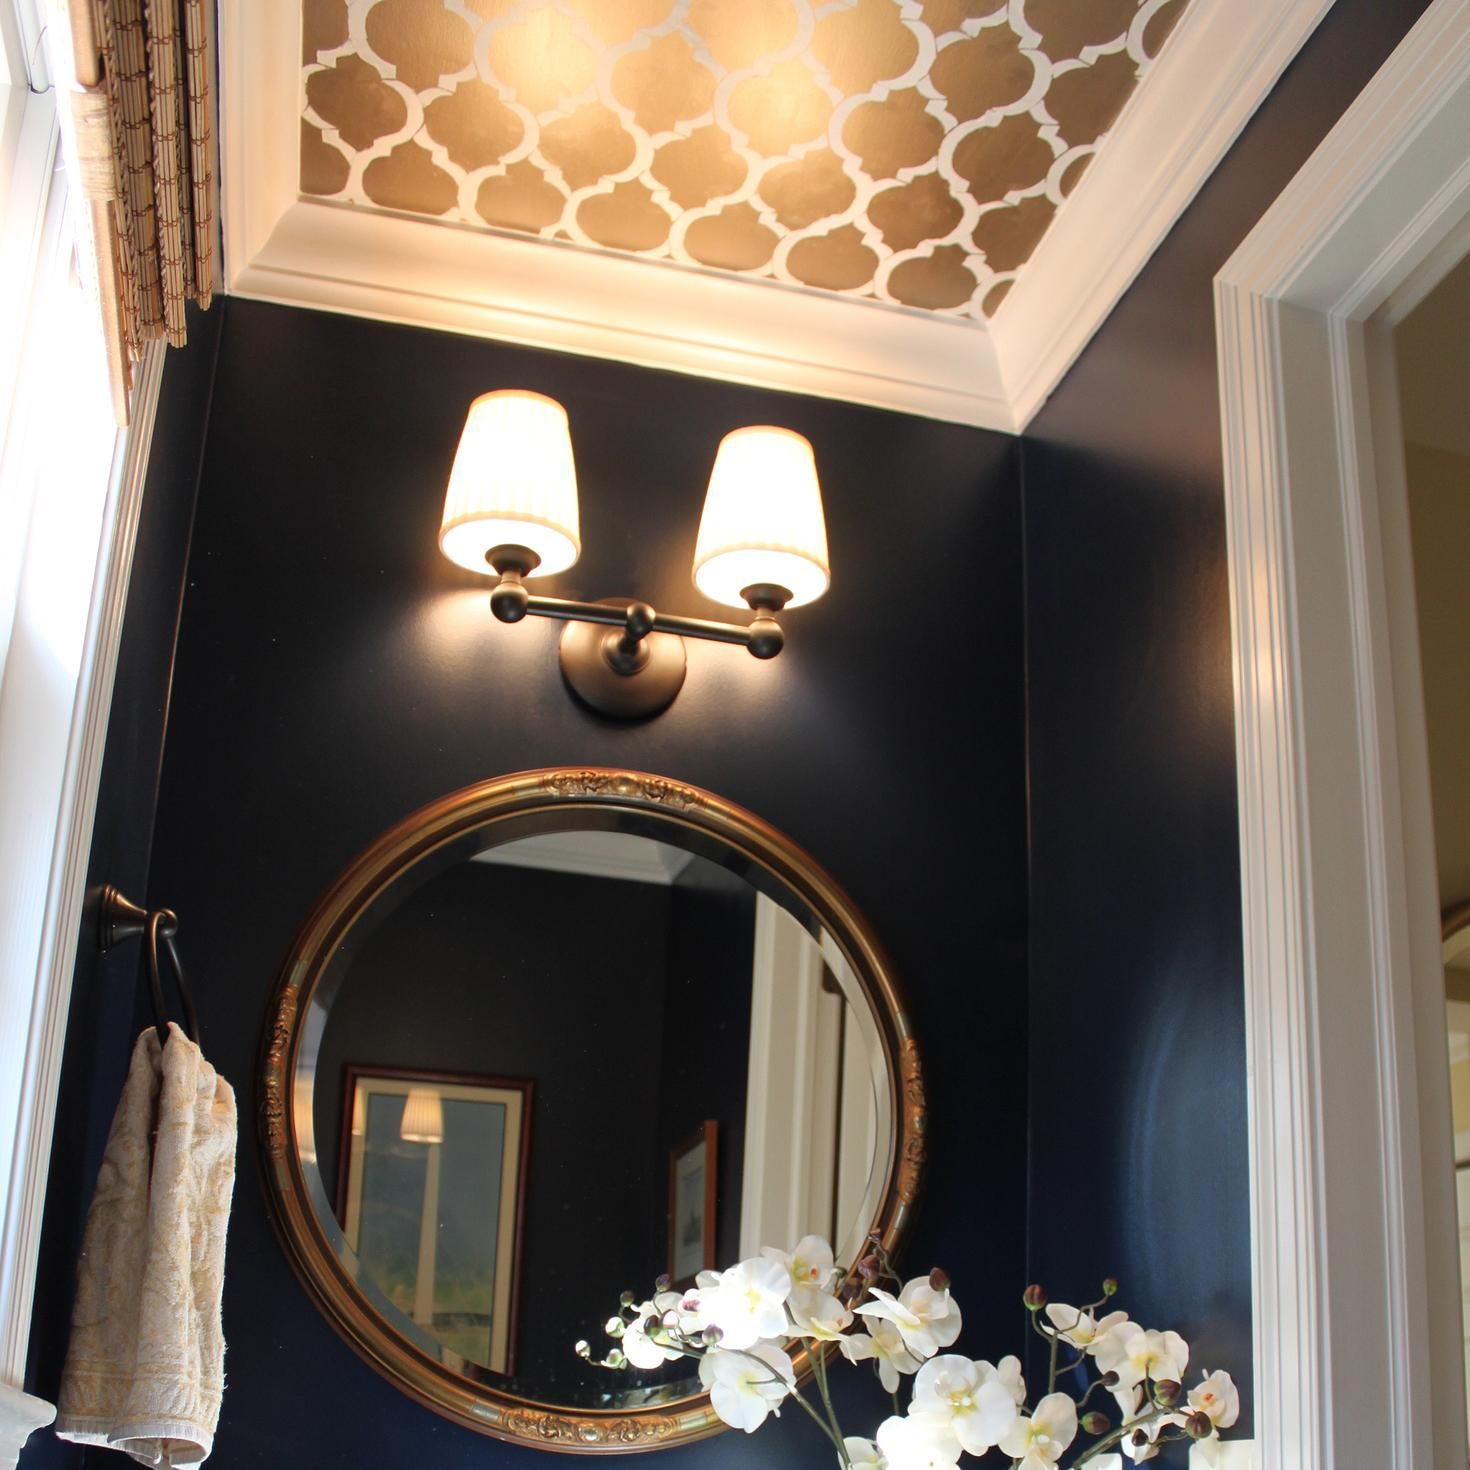 In Defense Of Painting Your Ceilings Anything But White In 2020 Dark Blue Bathrooms Colored Ceiling Dark Blue Walls